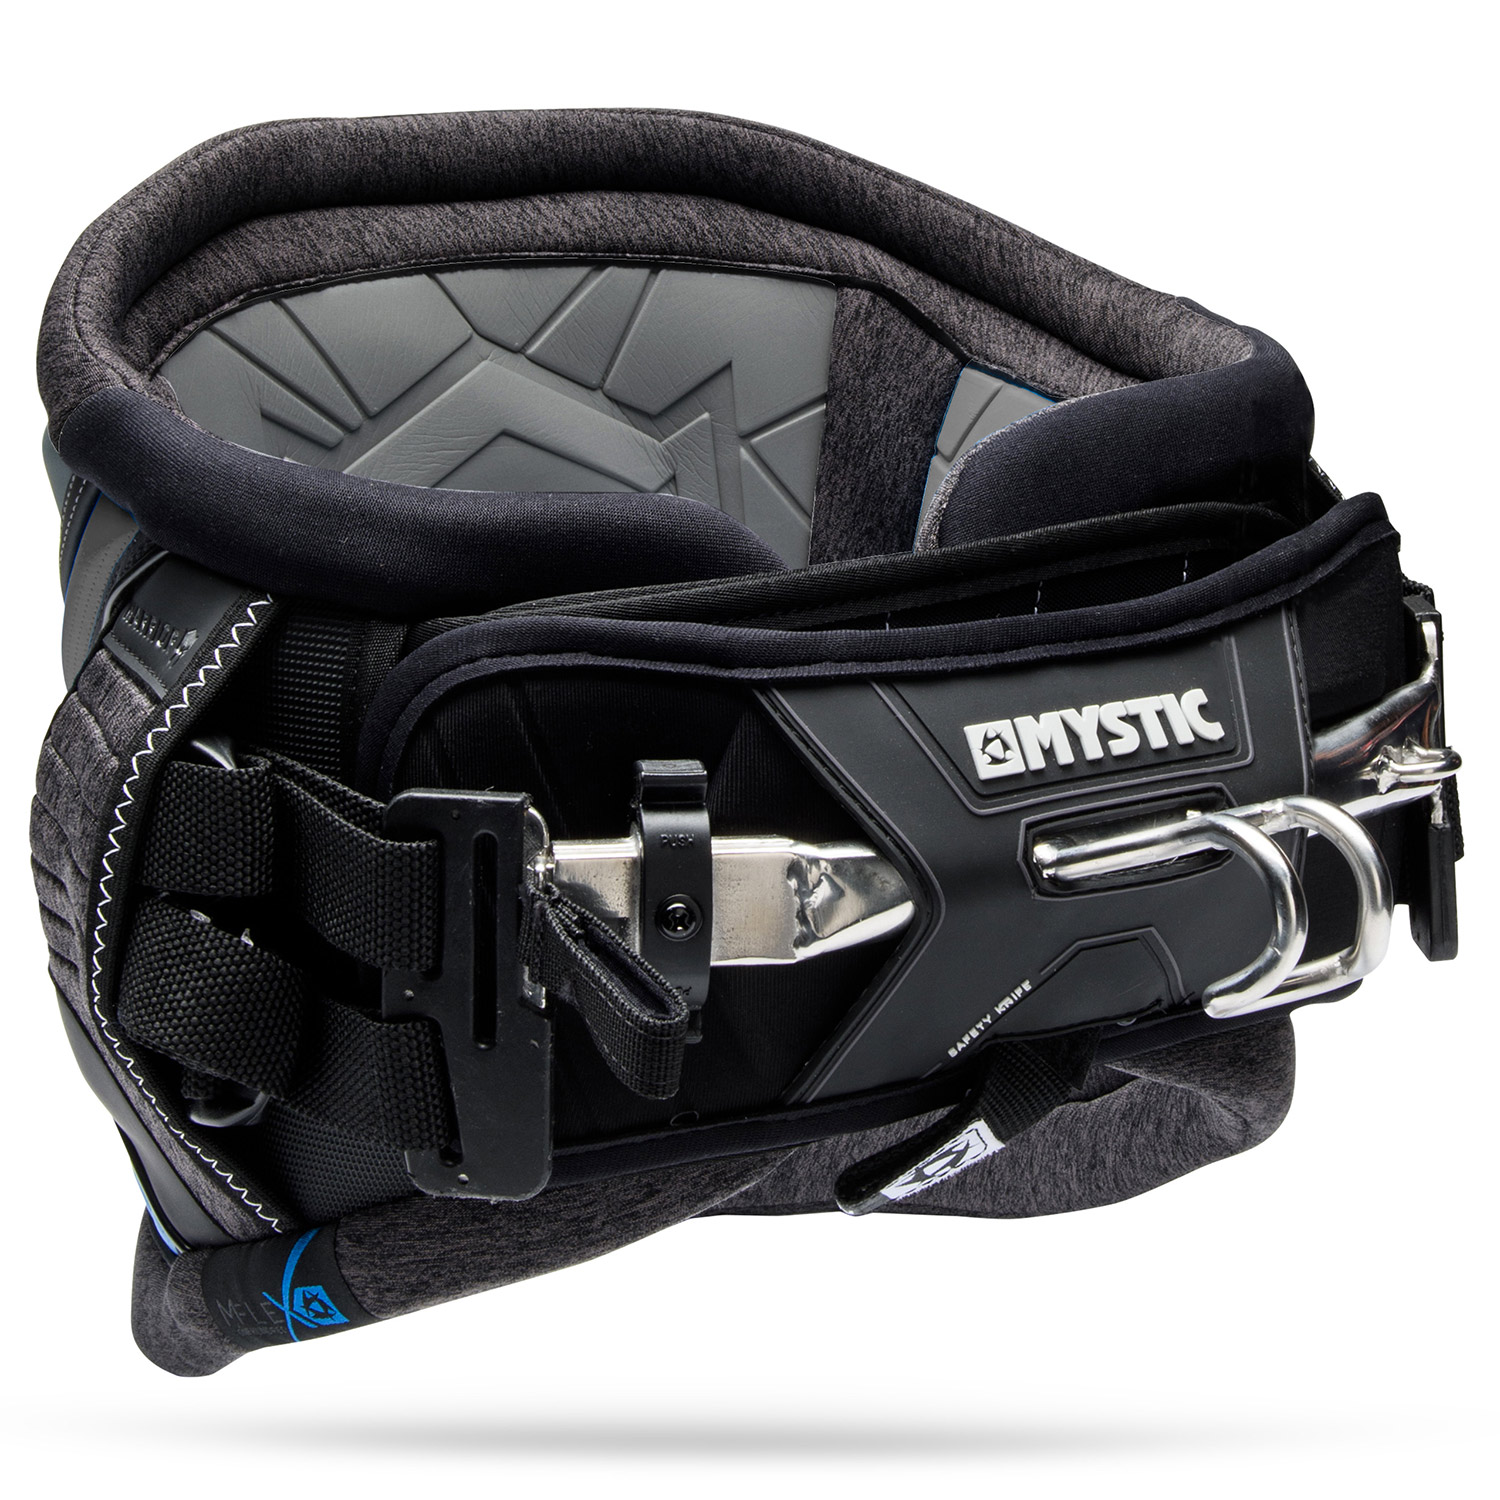 Mystic Warror V Black Waist Kitesurf Harness - ATBShop.co.uk